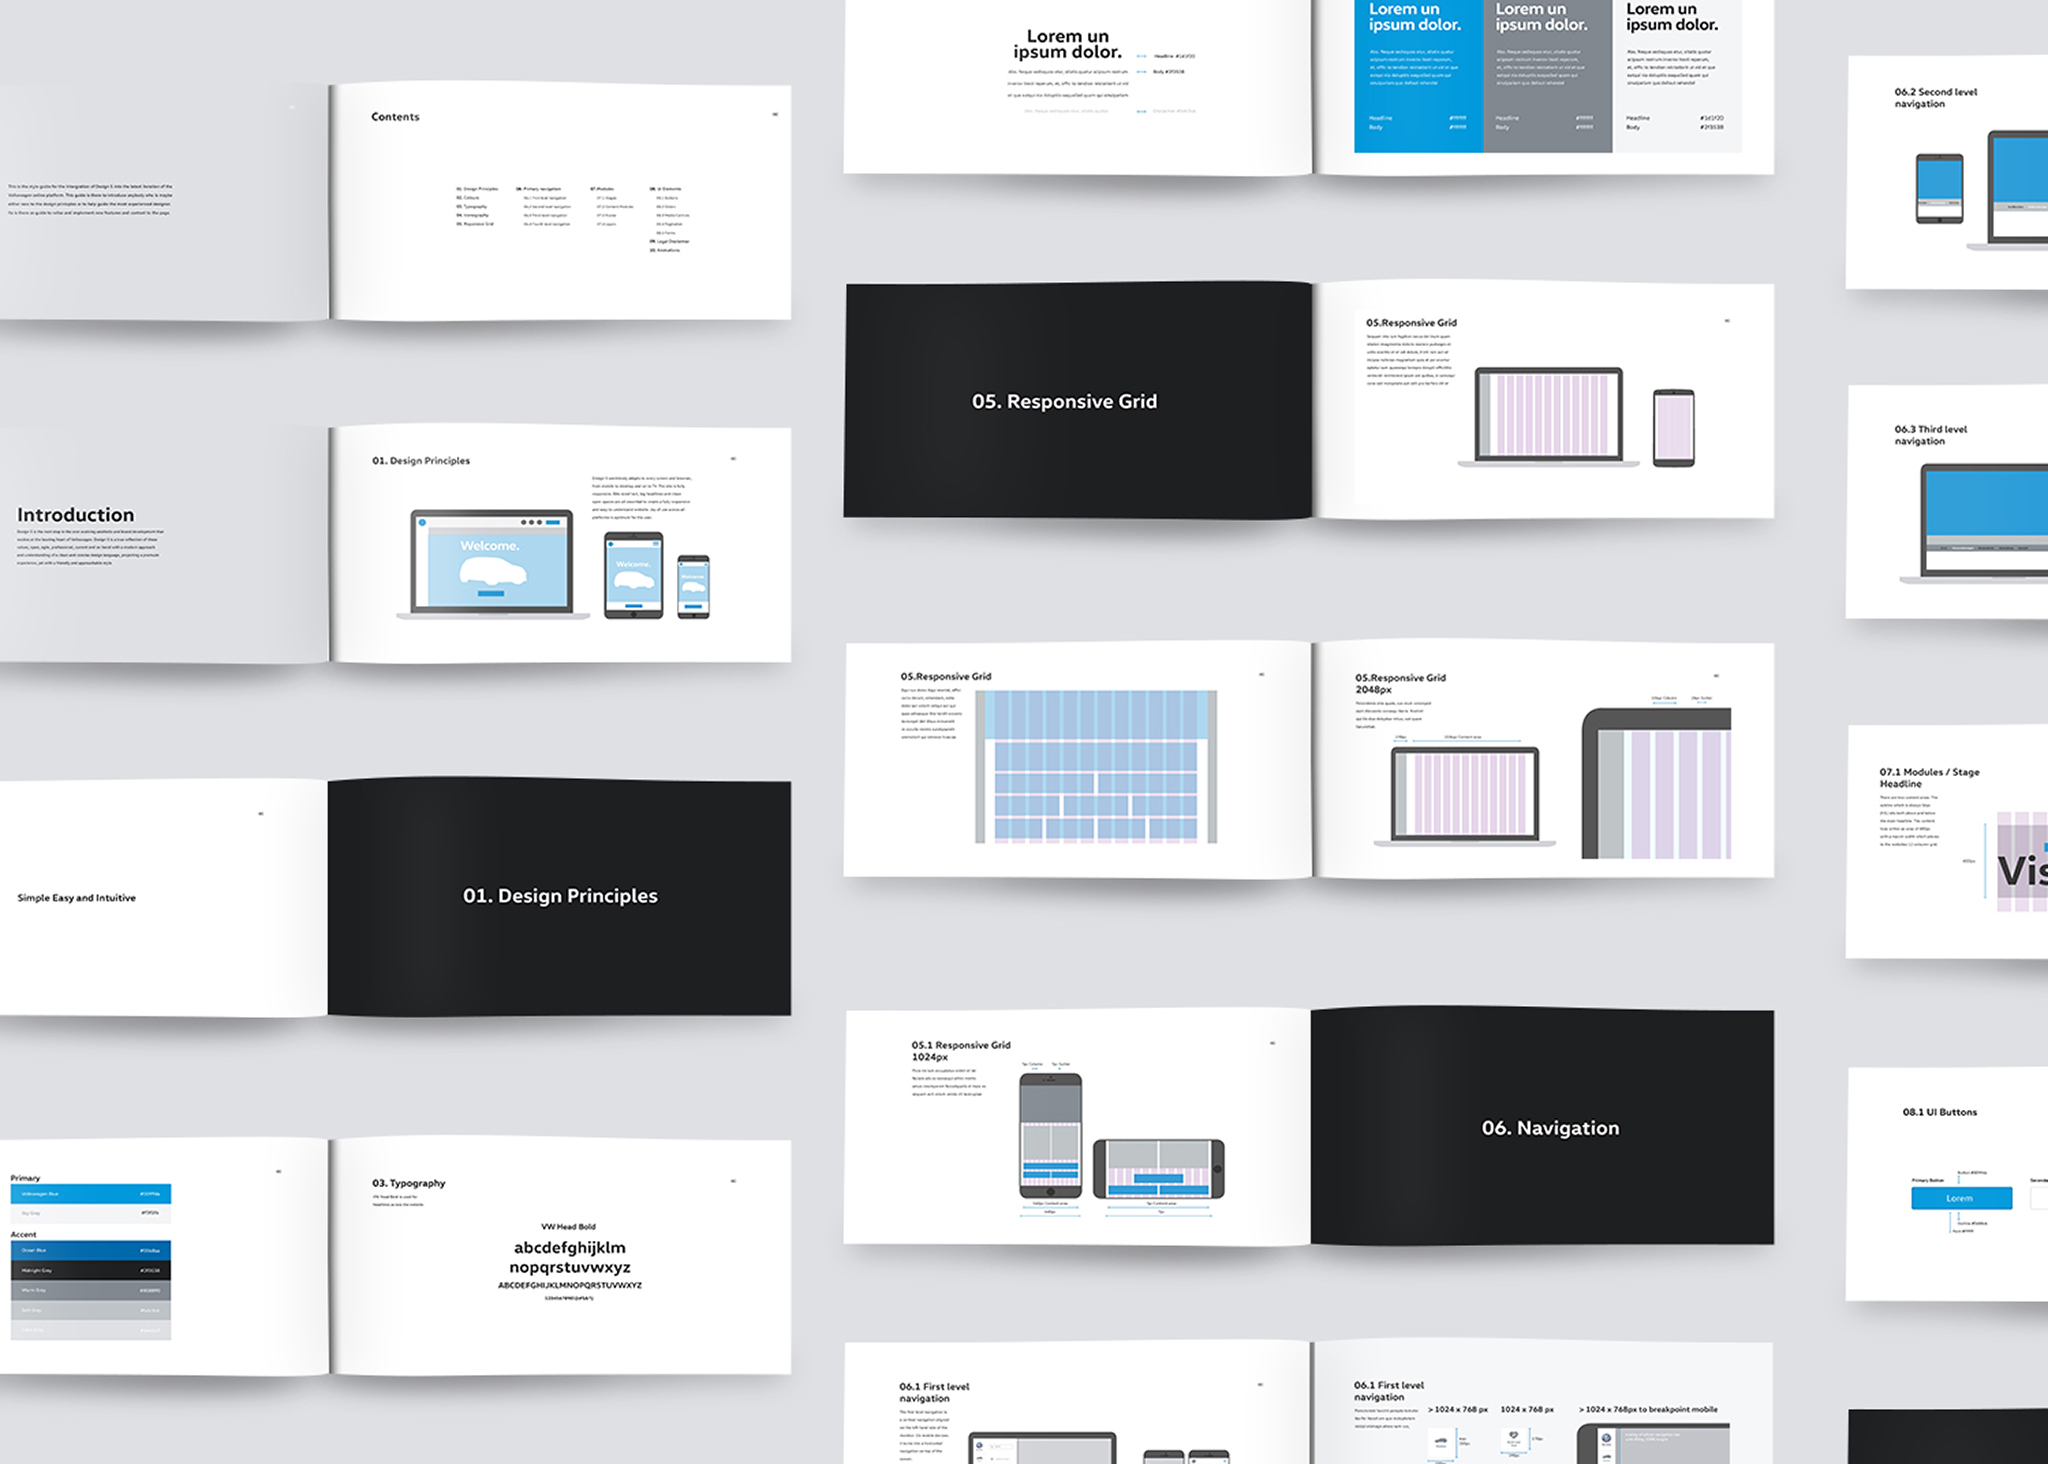 VW_mockups_guidelines_page_22